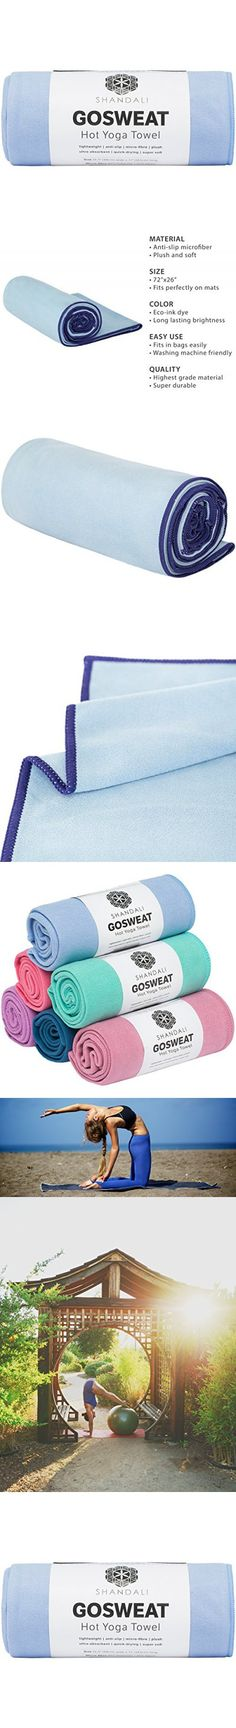 #1 Best Hot Yoga Towel (26.5x72) - SUEDE - 100% Microfiber, Skidless Yoga Towel, Super Absorbent, Anti-slip, Injury Free - Best Bikram Yoga Towel - Exercise, Fitness, Pilates, and Yoga Gear; Lifetime Guarantee